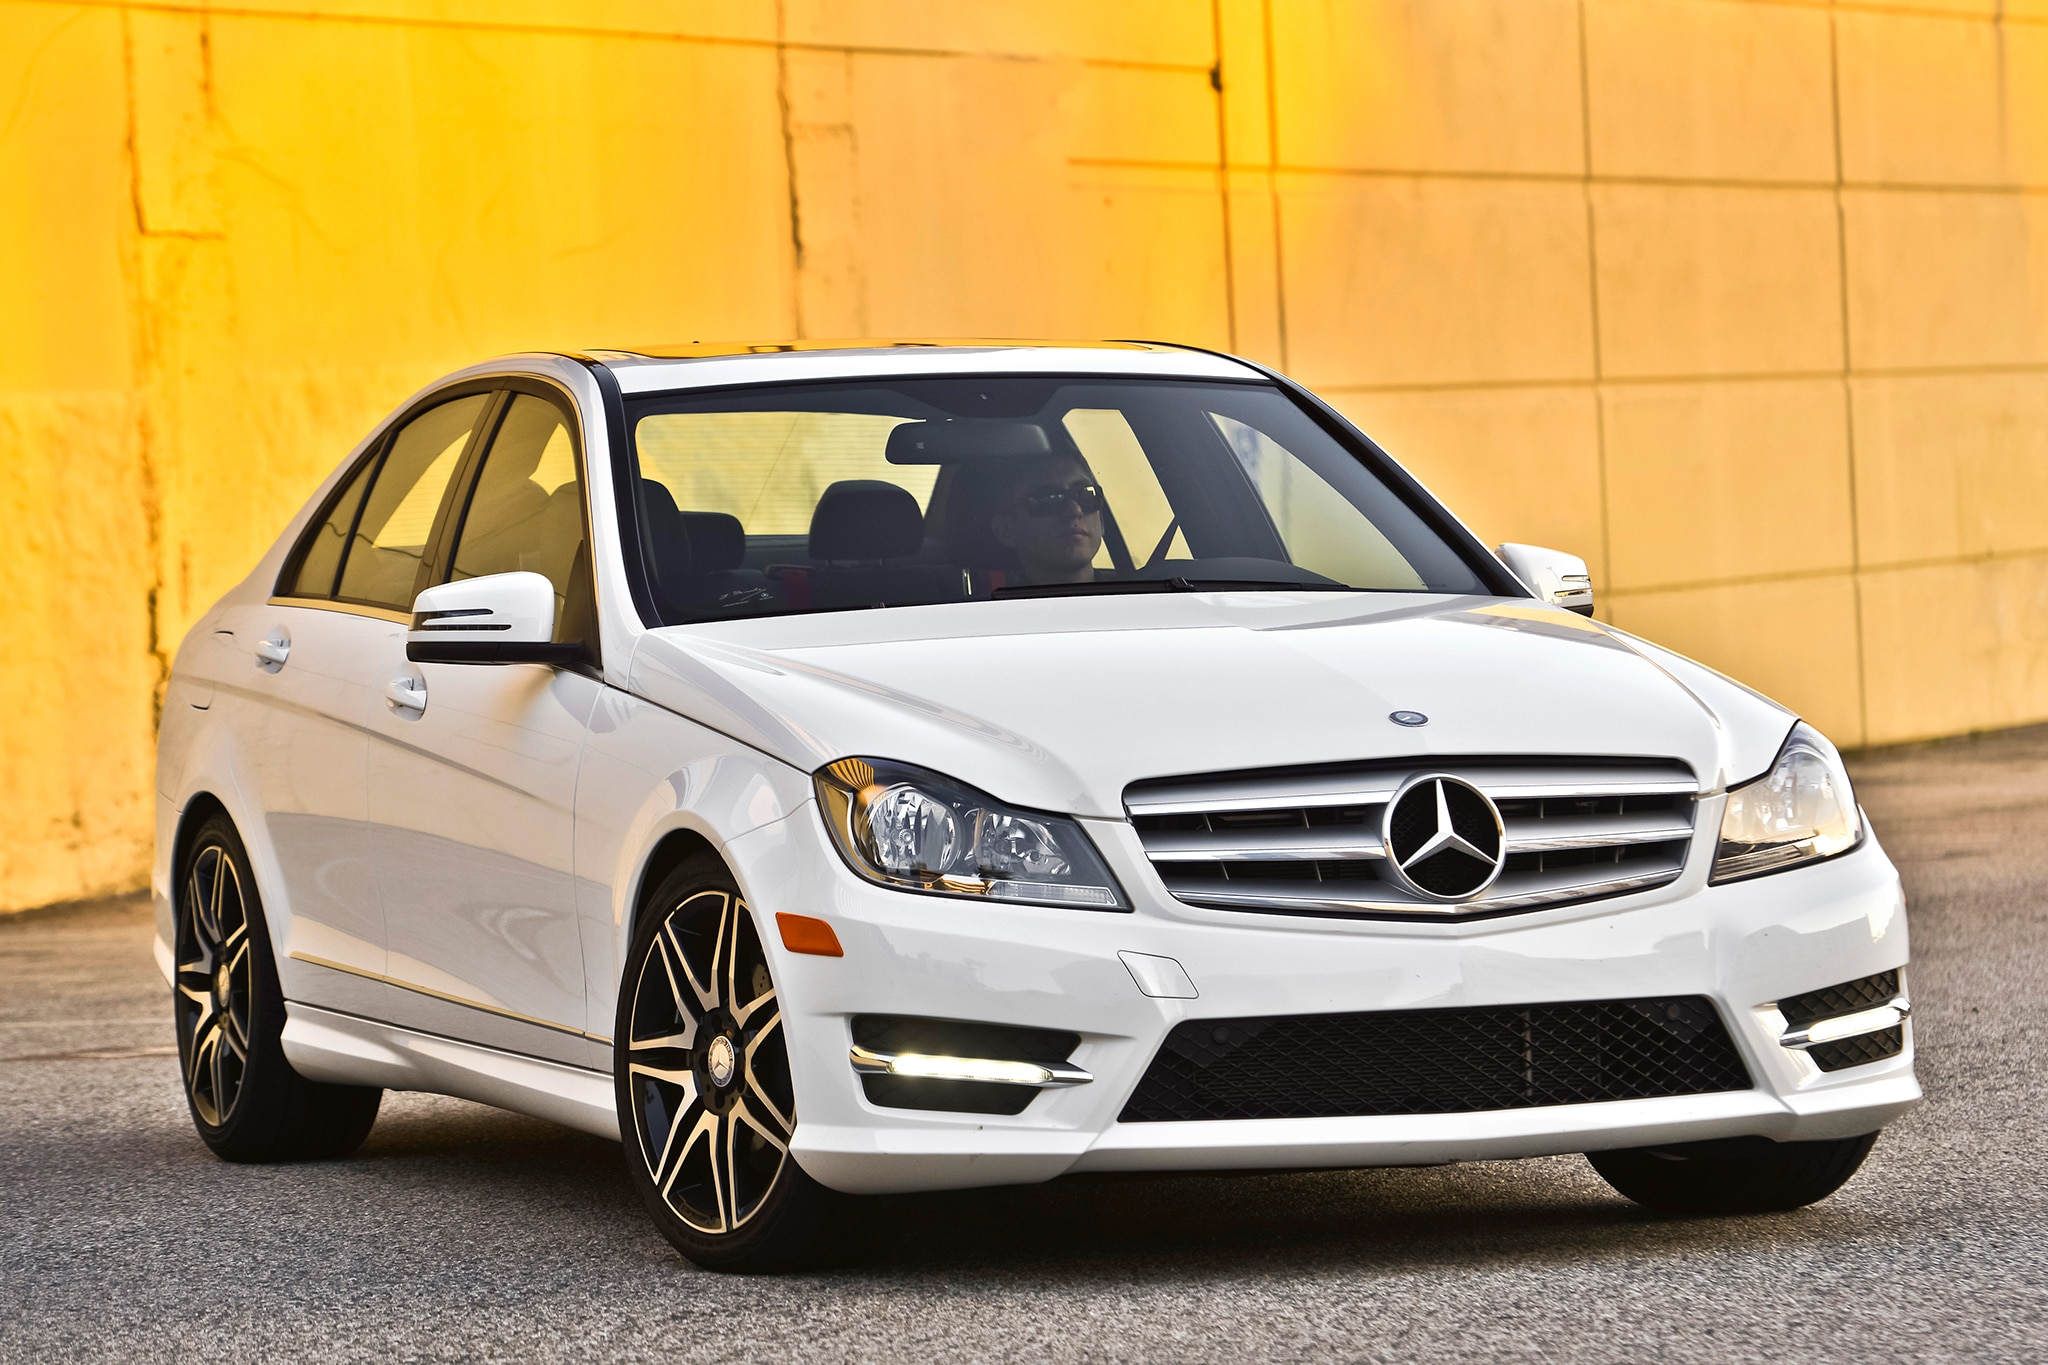 2013 mercedes benz c300 4matic gains power economy m class gets. Cars Review. Best American Auto & Cars Review